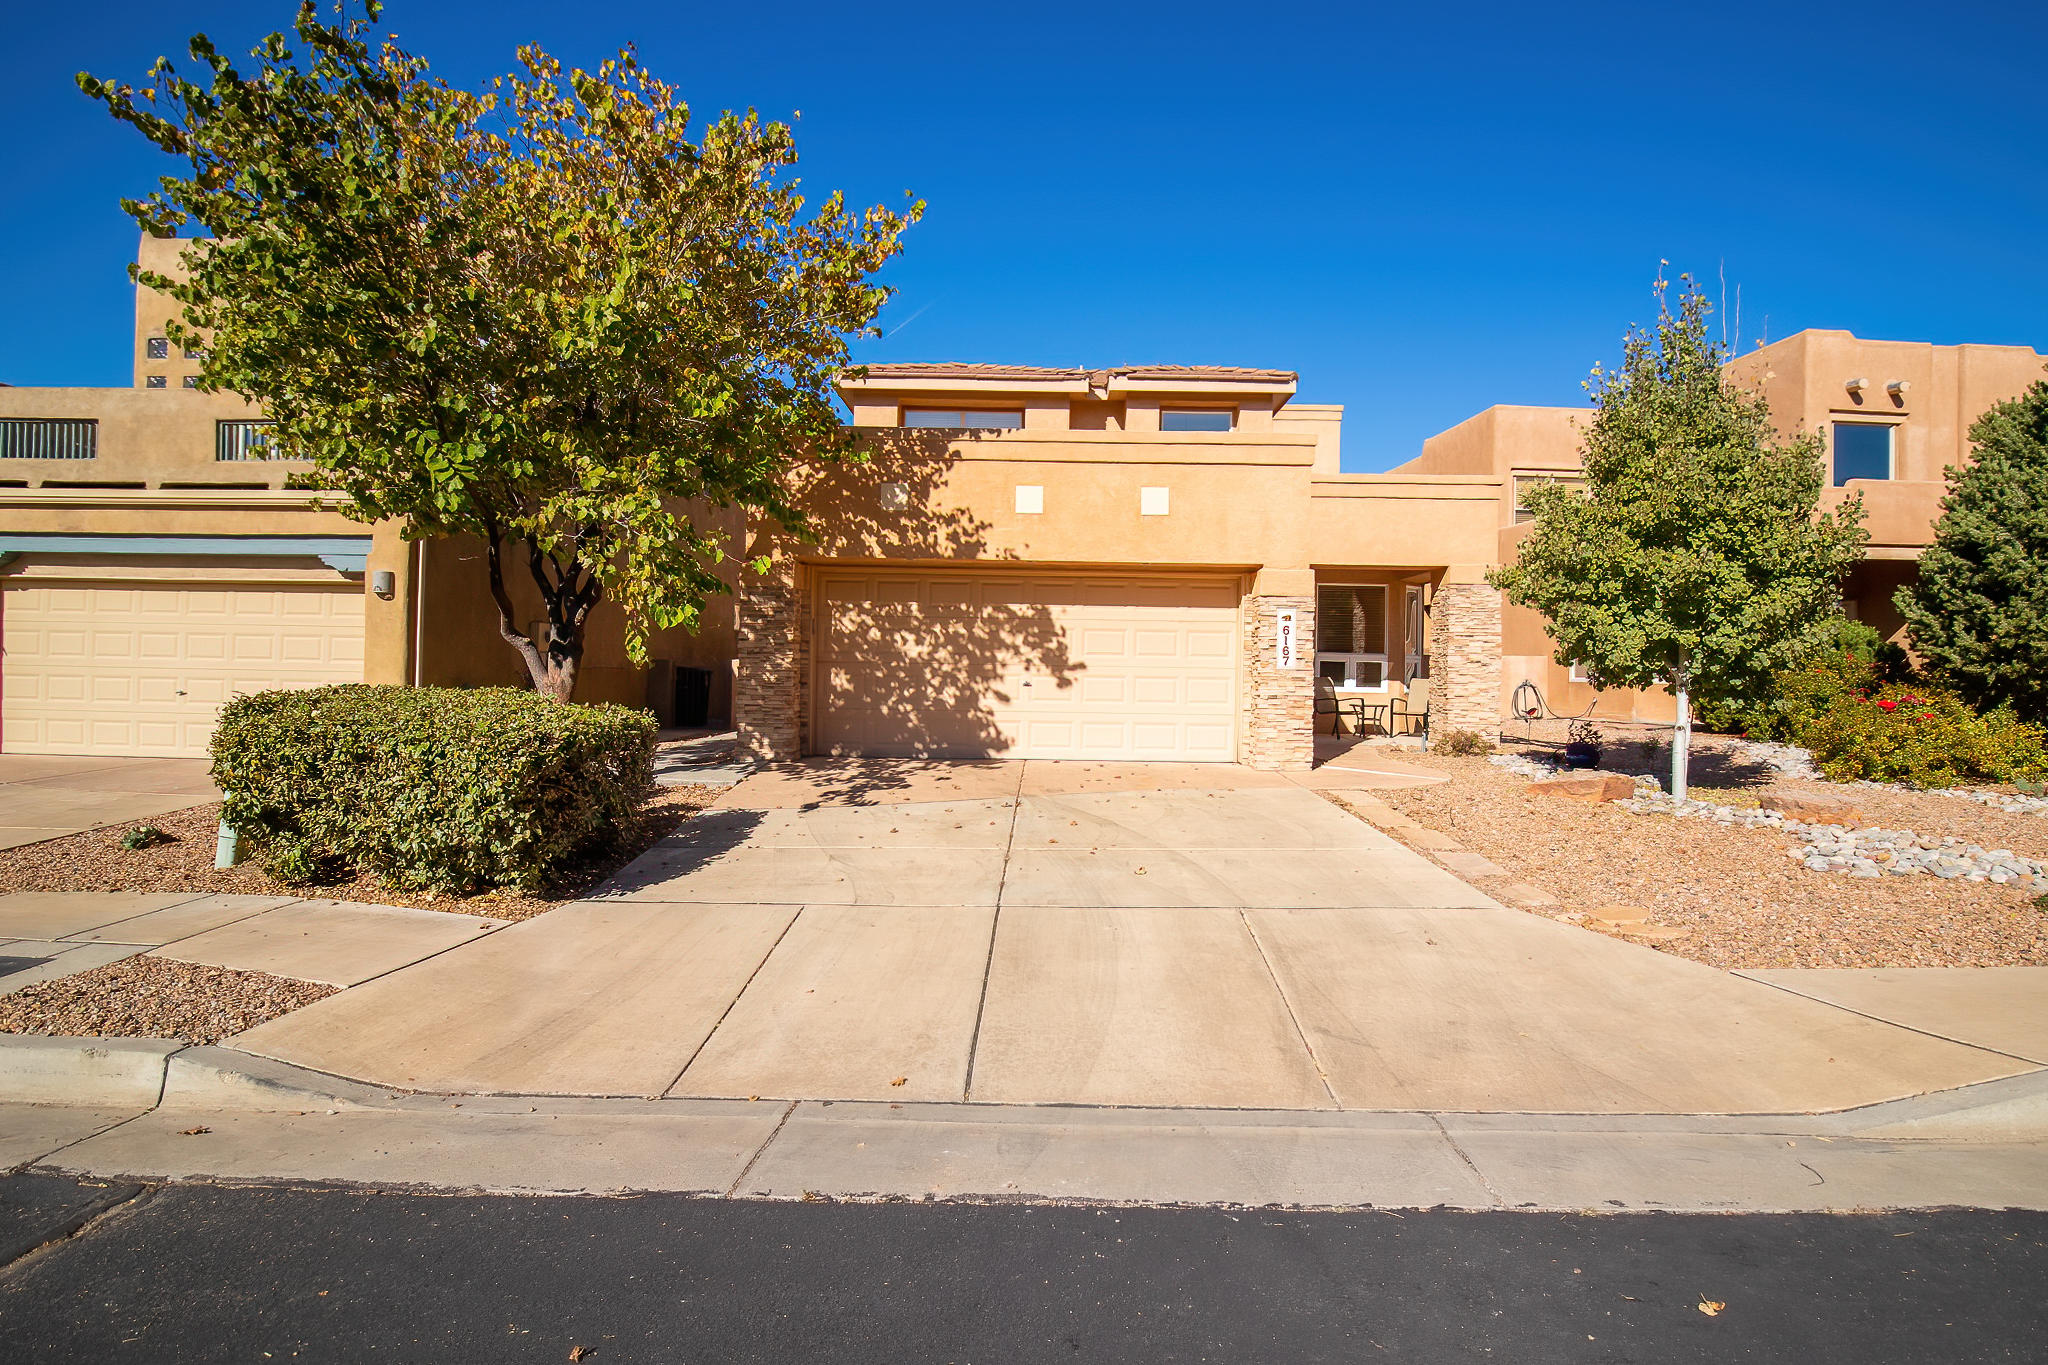 Beautiful SW style home in the gated community of Desert Mountain in High Desert. This home boasts a large wall of windows with great natural light, open floor plan, and plenty of living space. Kitchen offers lots of prep & cabinet space, 2 year old stainless steel appliances and a breakfast nook. Gas fireplace & built in shelves add character to the living room. Owner's suite is on the main floor with a full bath and private access to the backyard.  Upstairs are two bedrooms and a large loft, which could be a game room, office space, etc. Magnificent mountain views from the upstairs view deck and also from the front of the home.  Blinds (living room) & decking put in 2018. Quick and easy access to many hiking and biking trails.